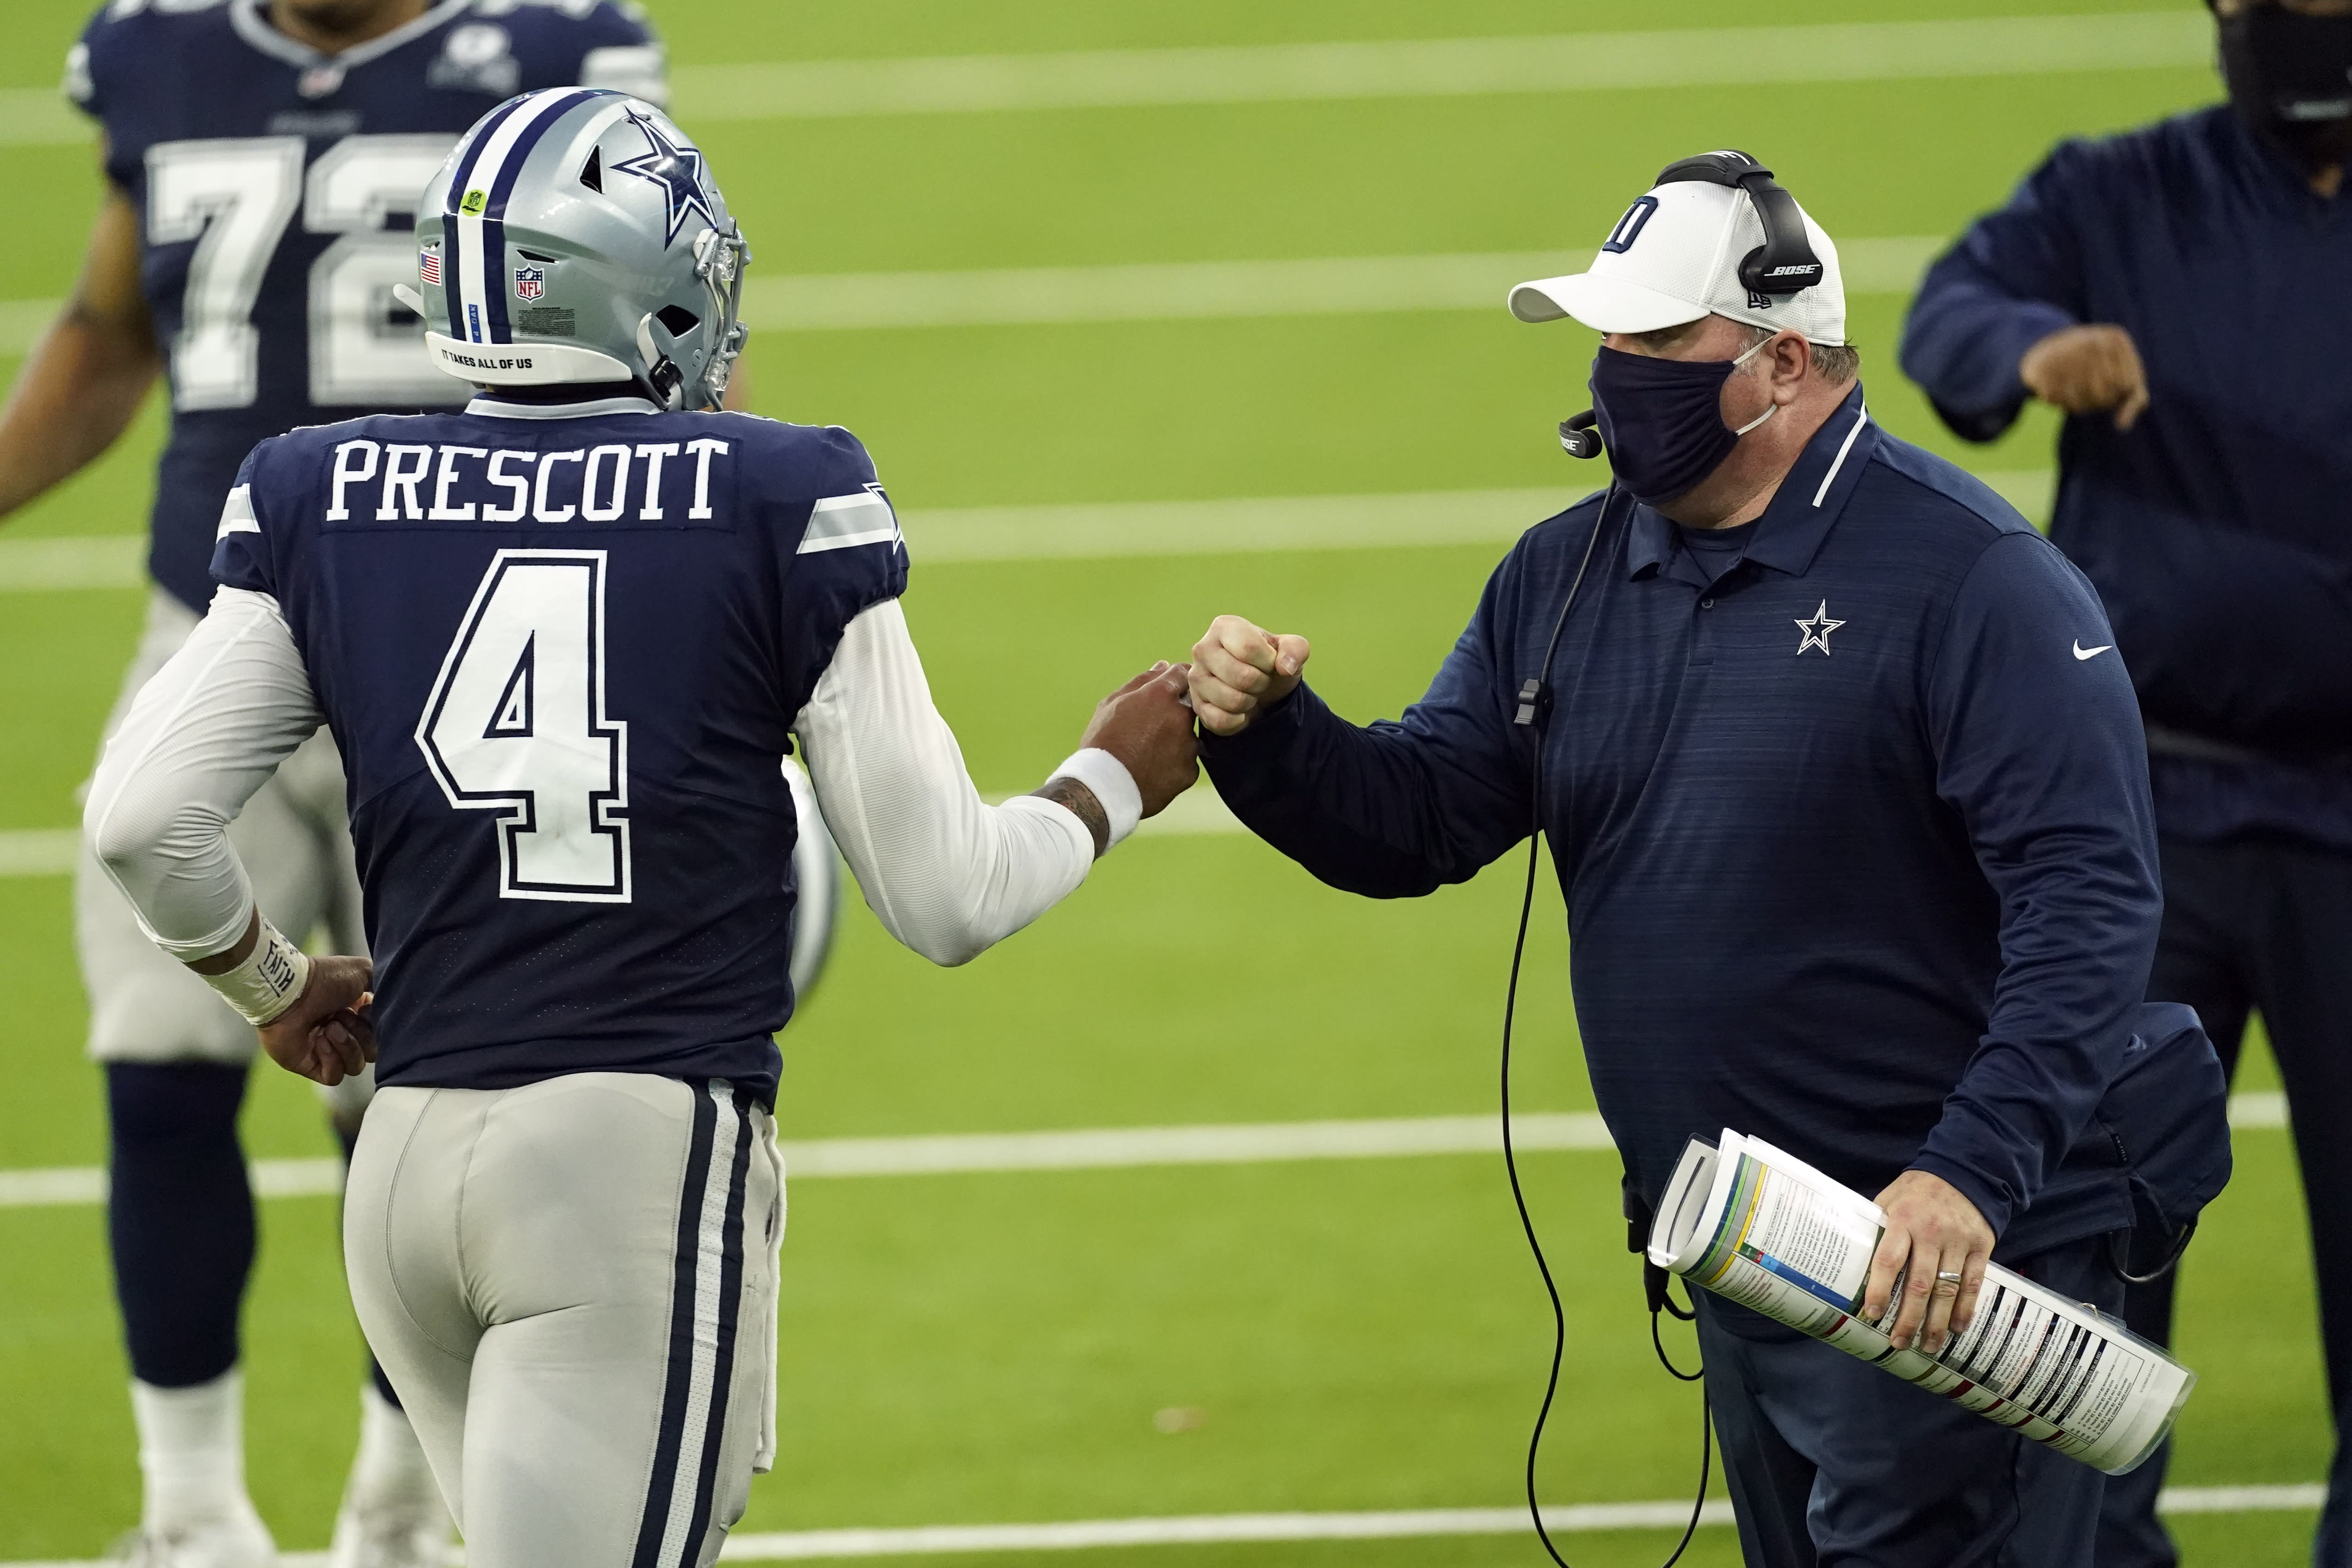 Dallas Cowboys head coach Mike McCarthy bumps fists with quarterback Dak Prescott (4) during the first half of an NFL football game against the Los Angeles Rams Sunday, Sept. 13, 2020, in Inglewood, Calif. (AP Photo/Ashley Landis )